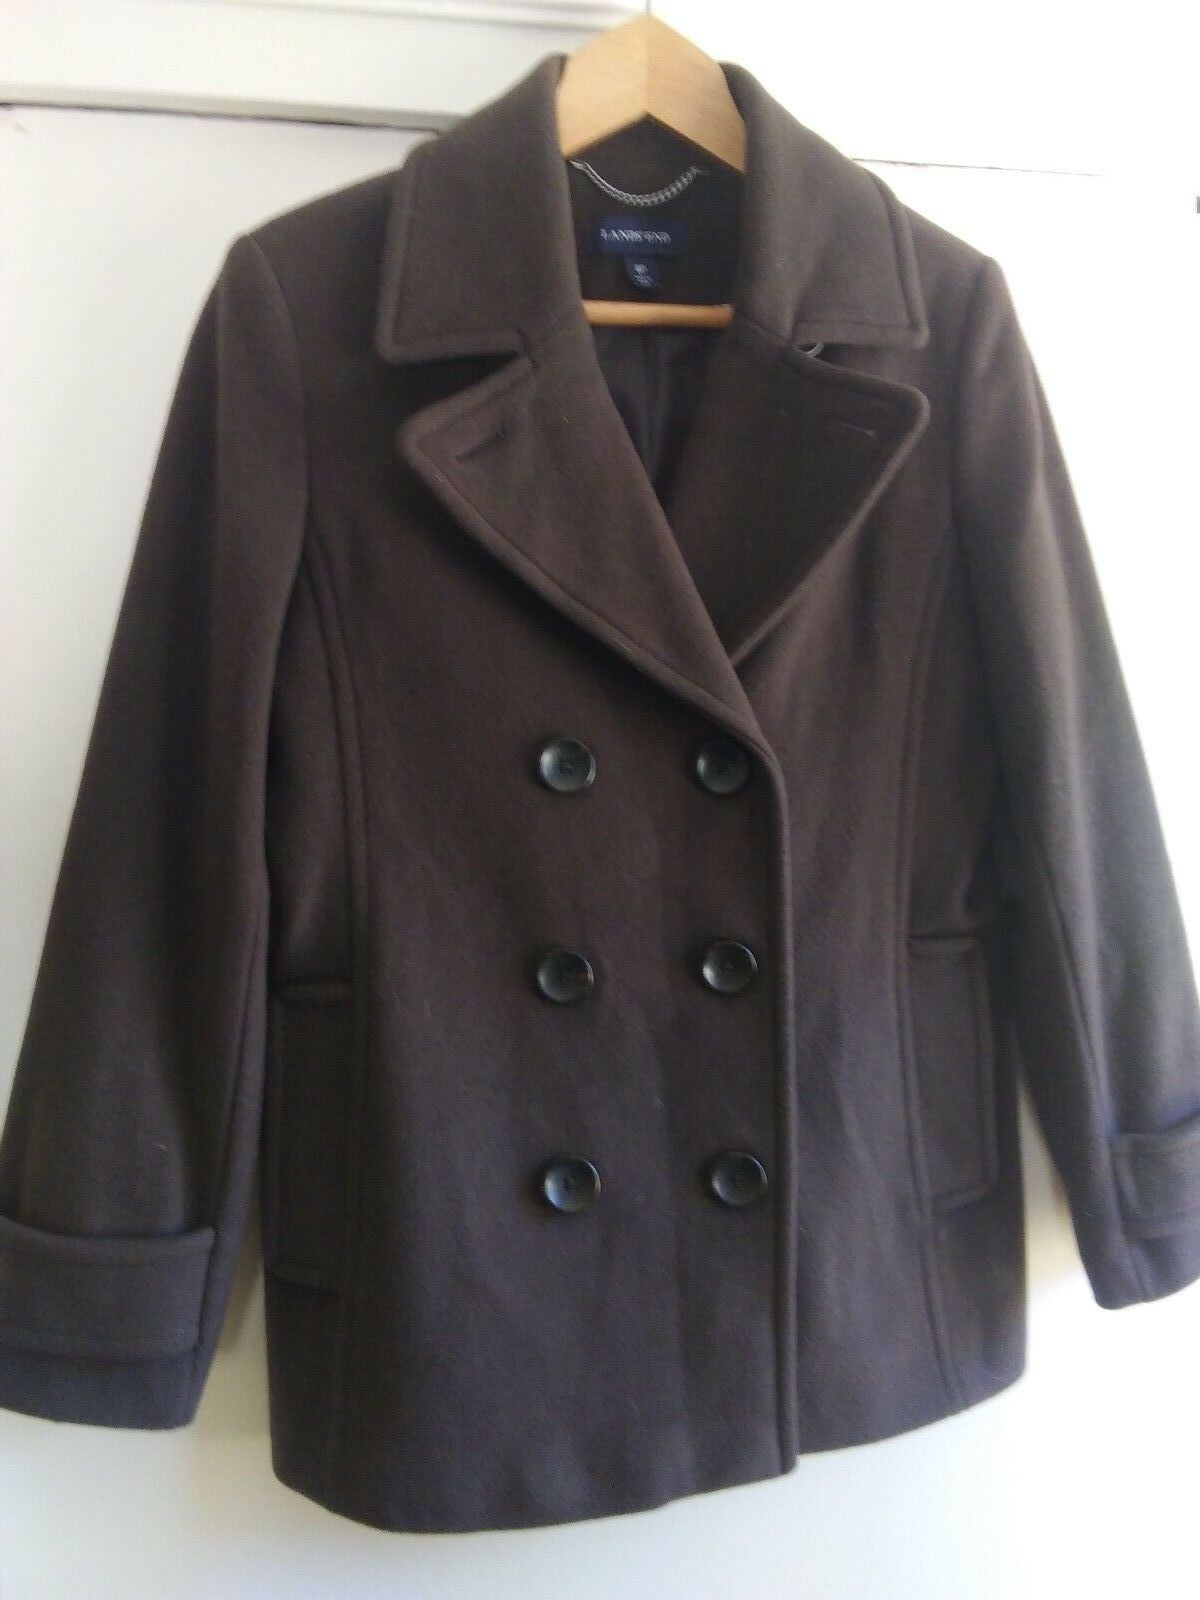 Lands' End Brown Peacoat Women's Size 8P Wool Cashmere Blend